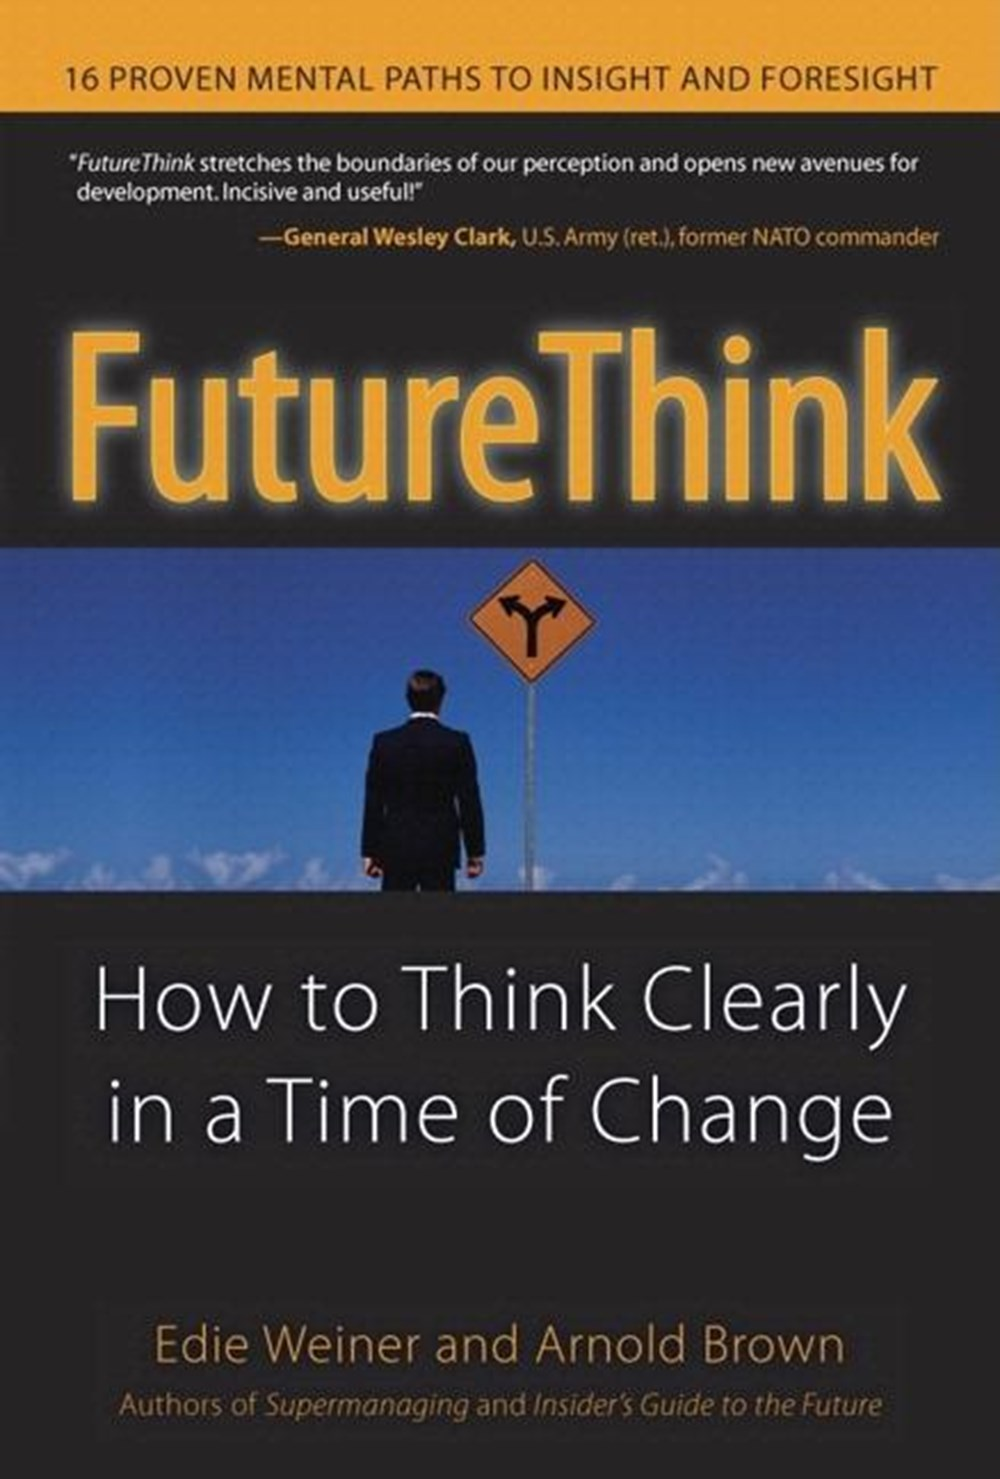 FutureThink How to Think Clearly in a Time of Change